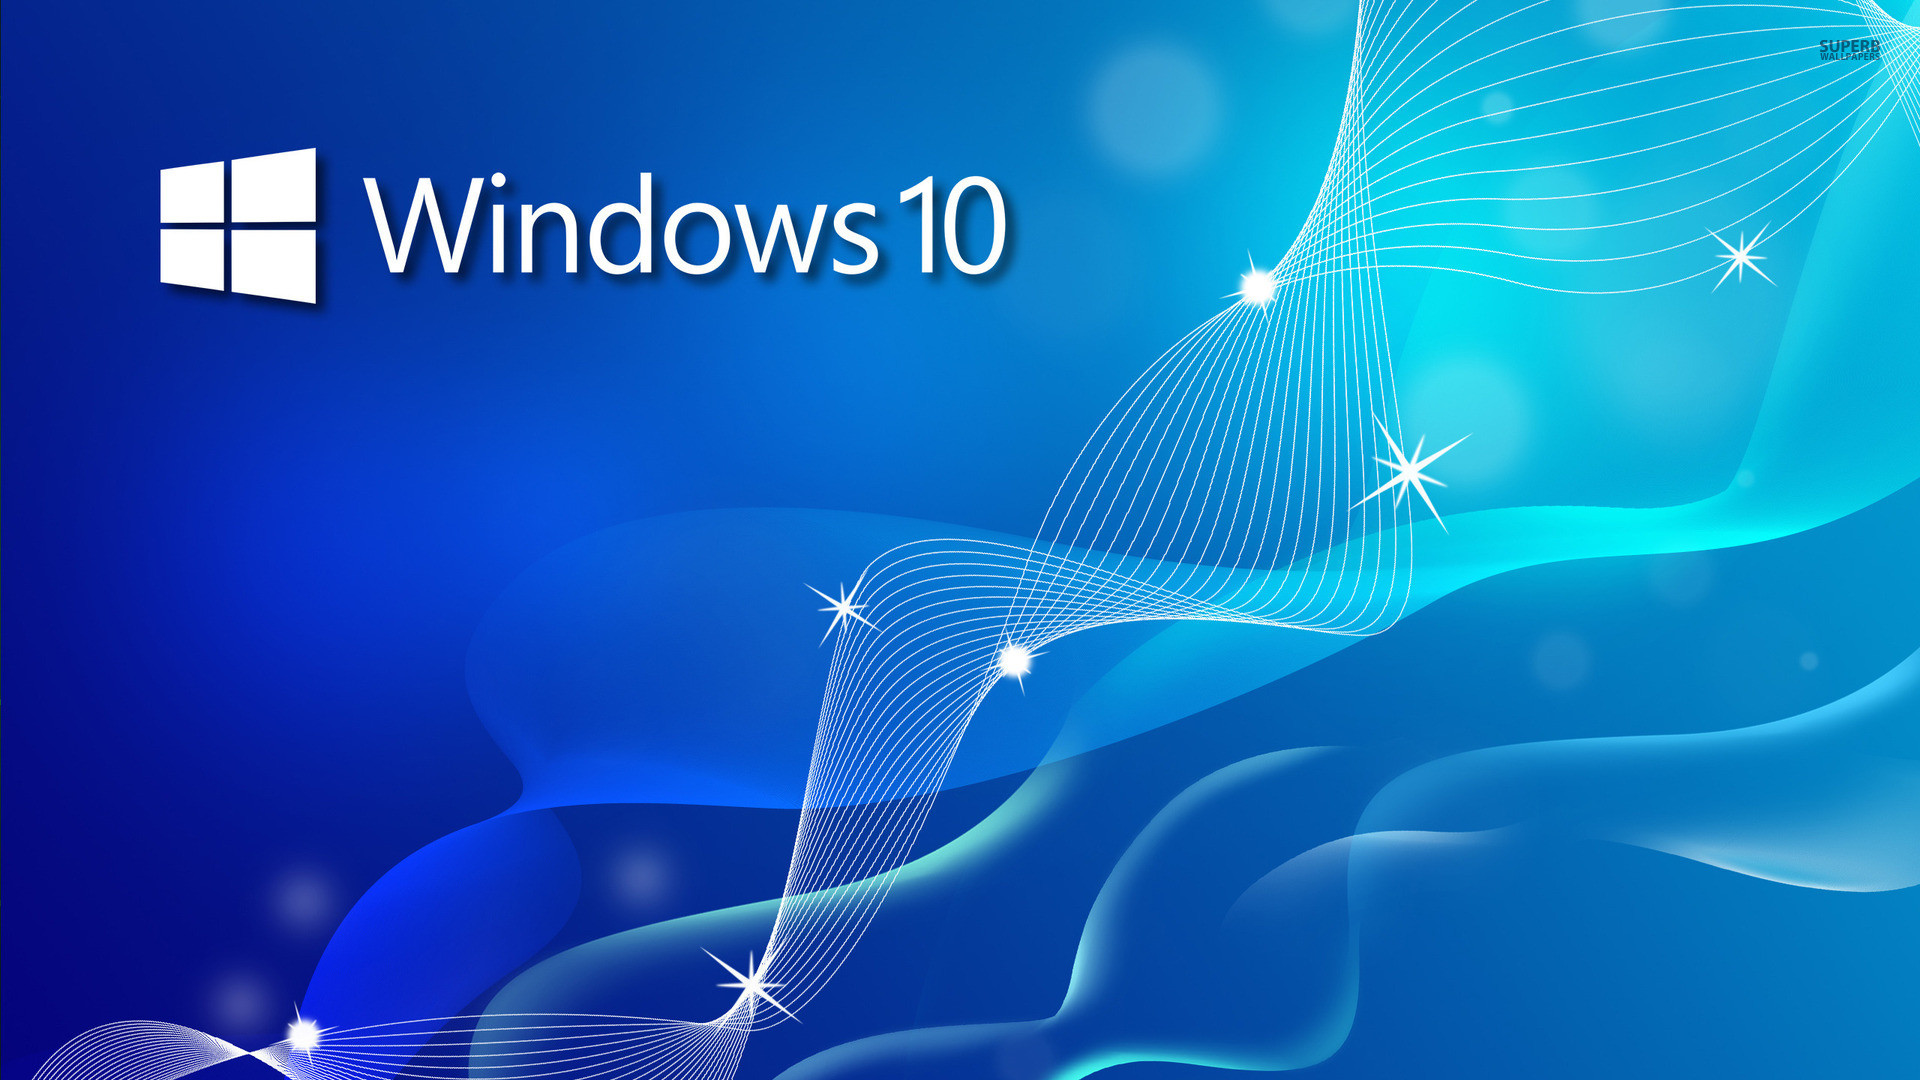 Hd Windows 10 Logo Wallpapers 68 Images